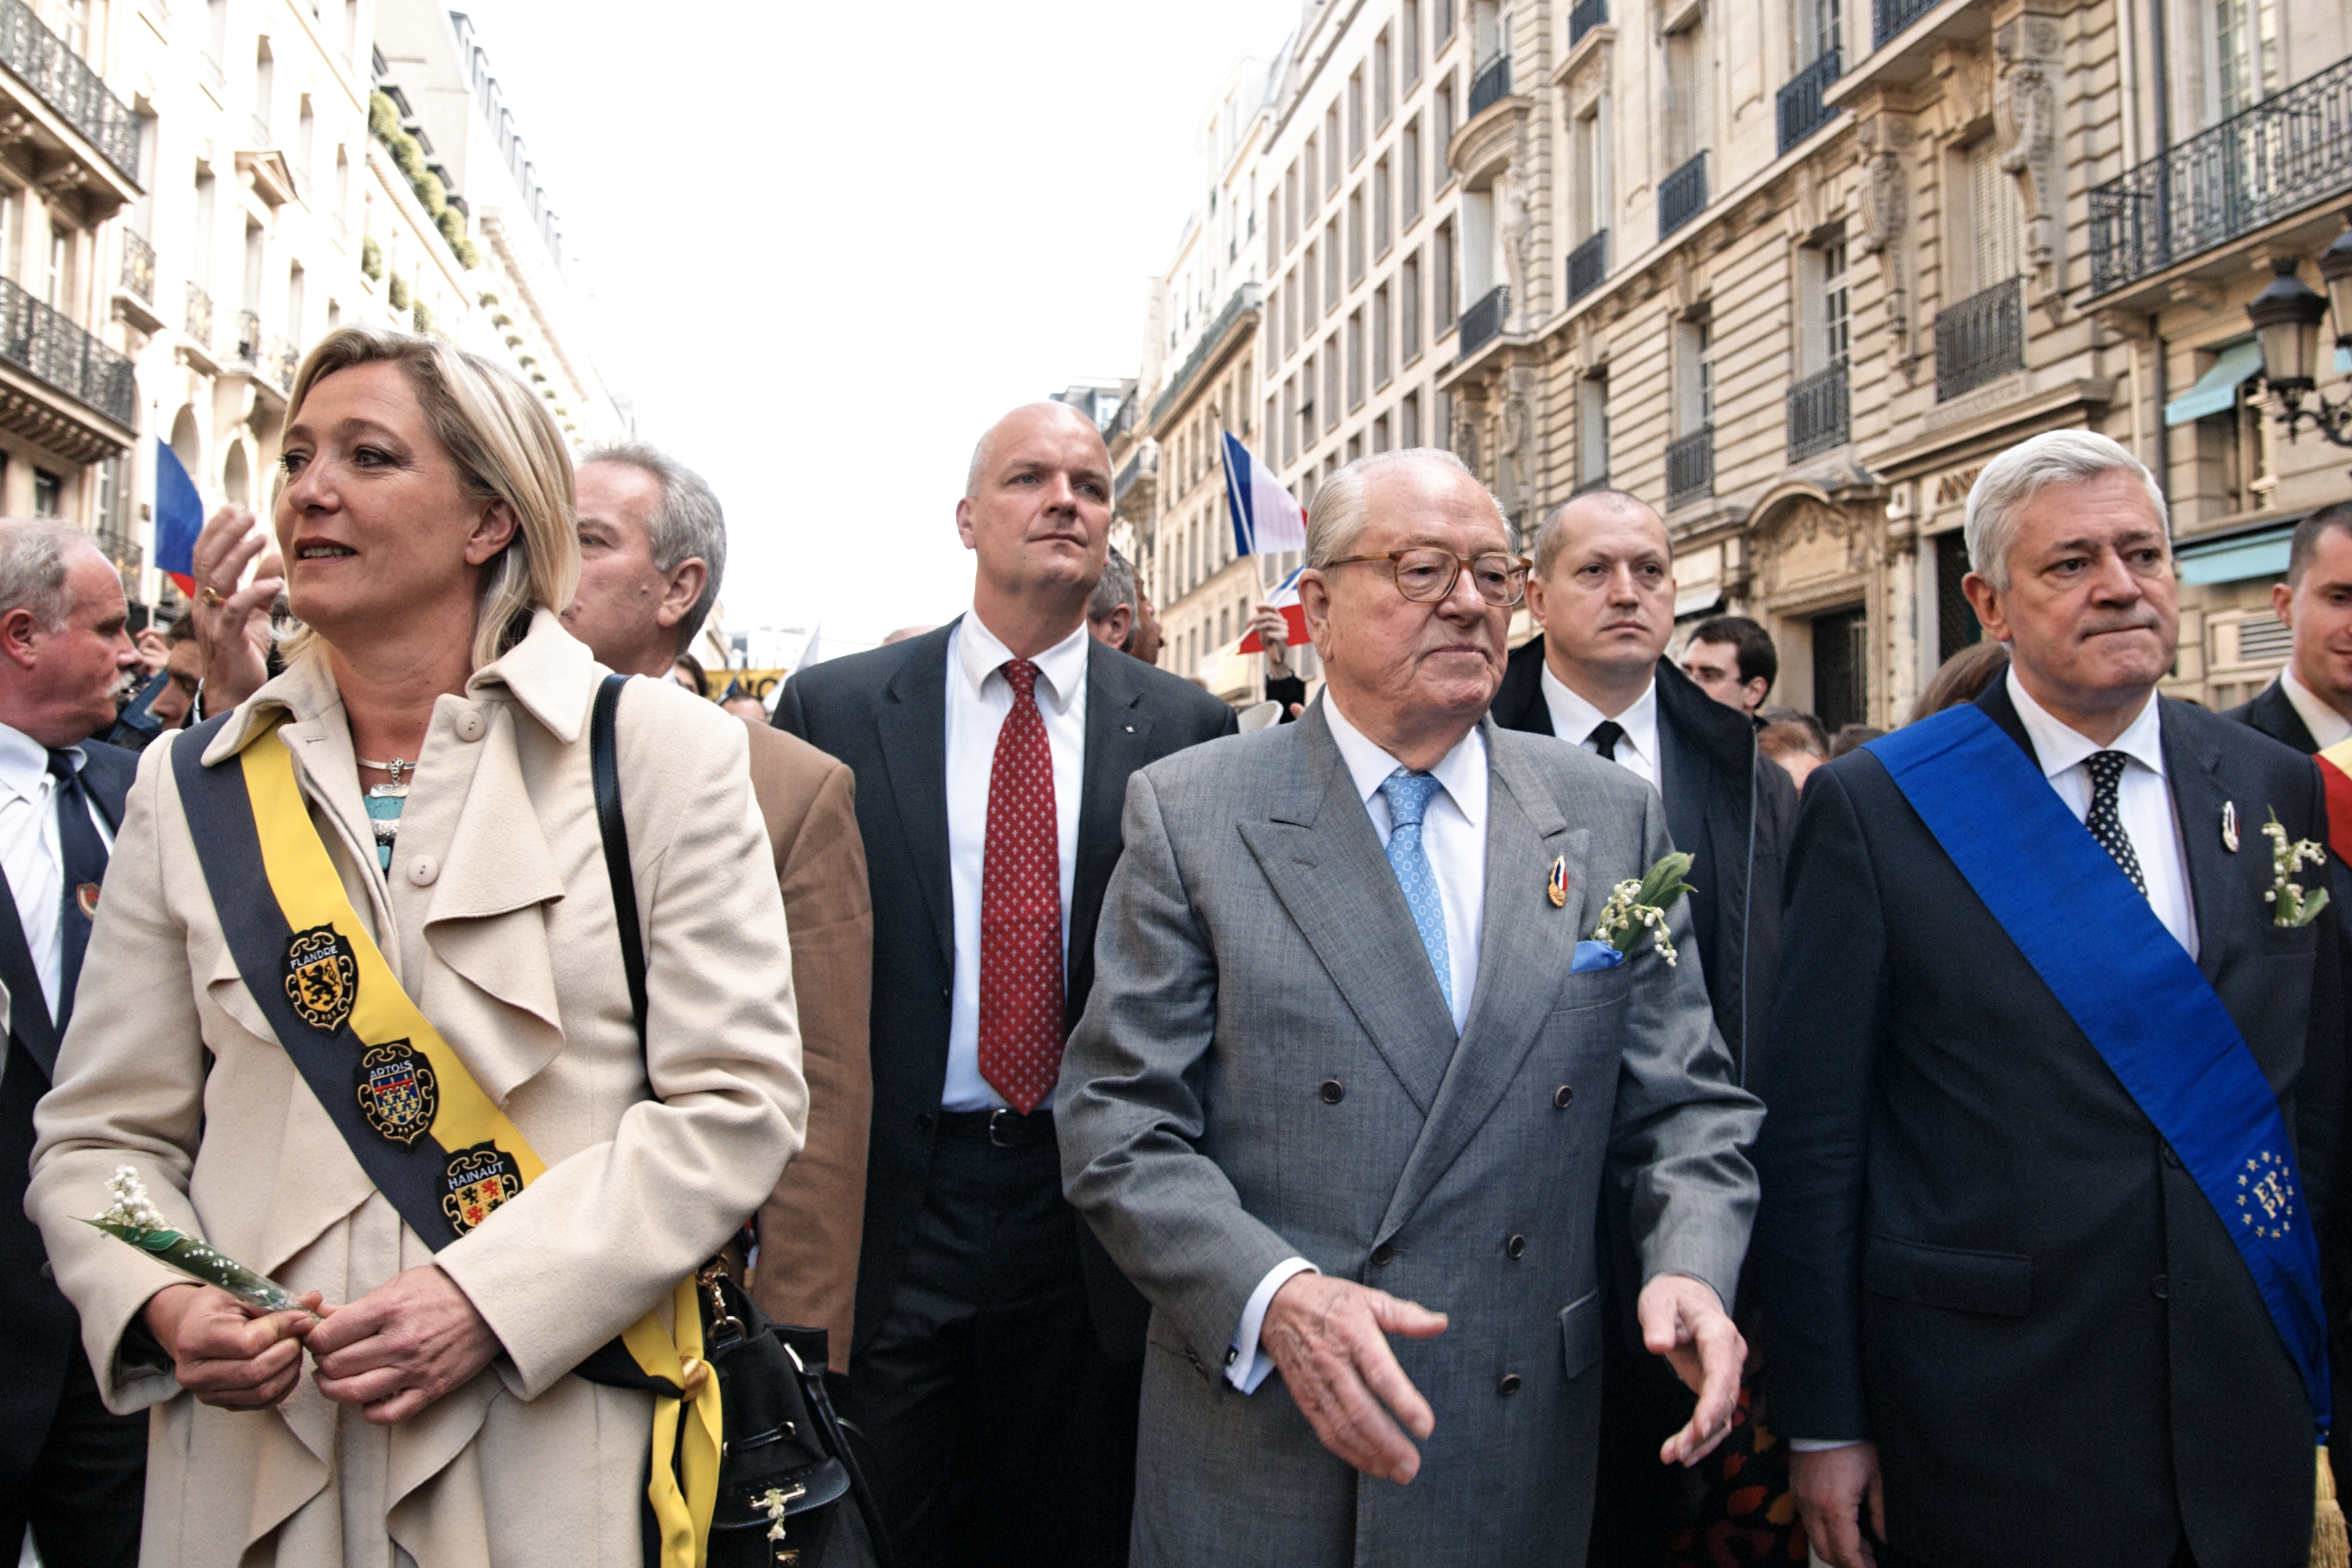 File front national 2010 05 01 n03 jpg wikimedia commons